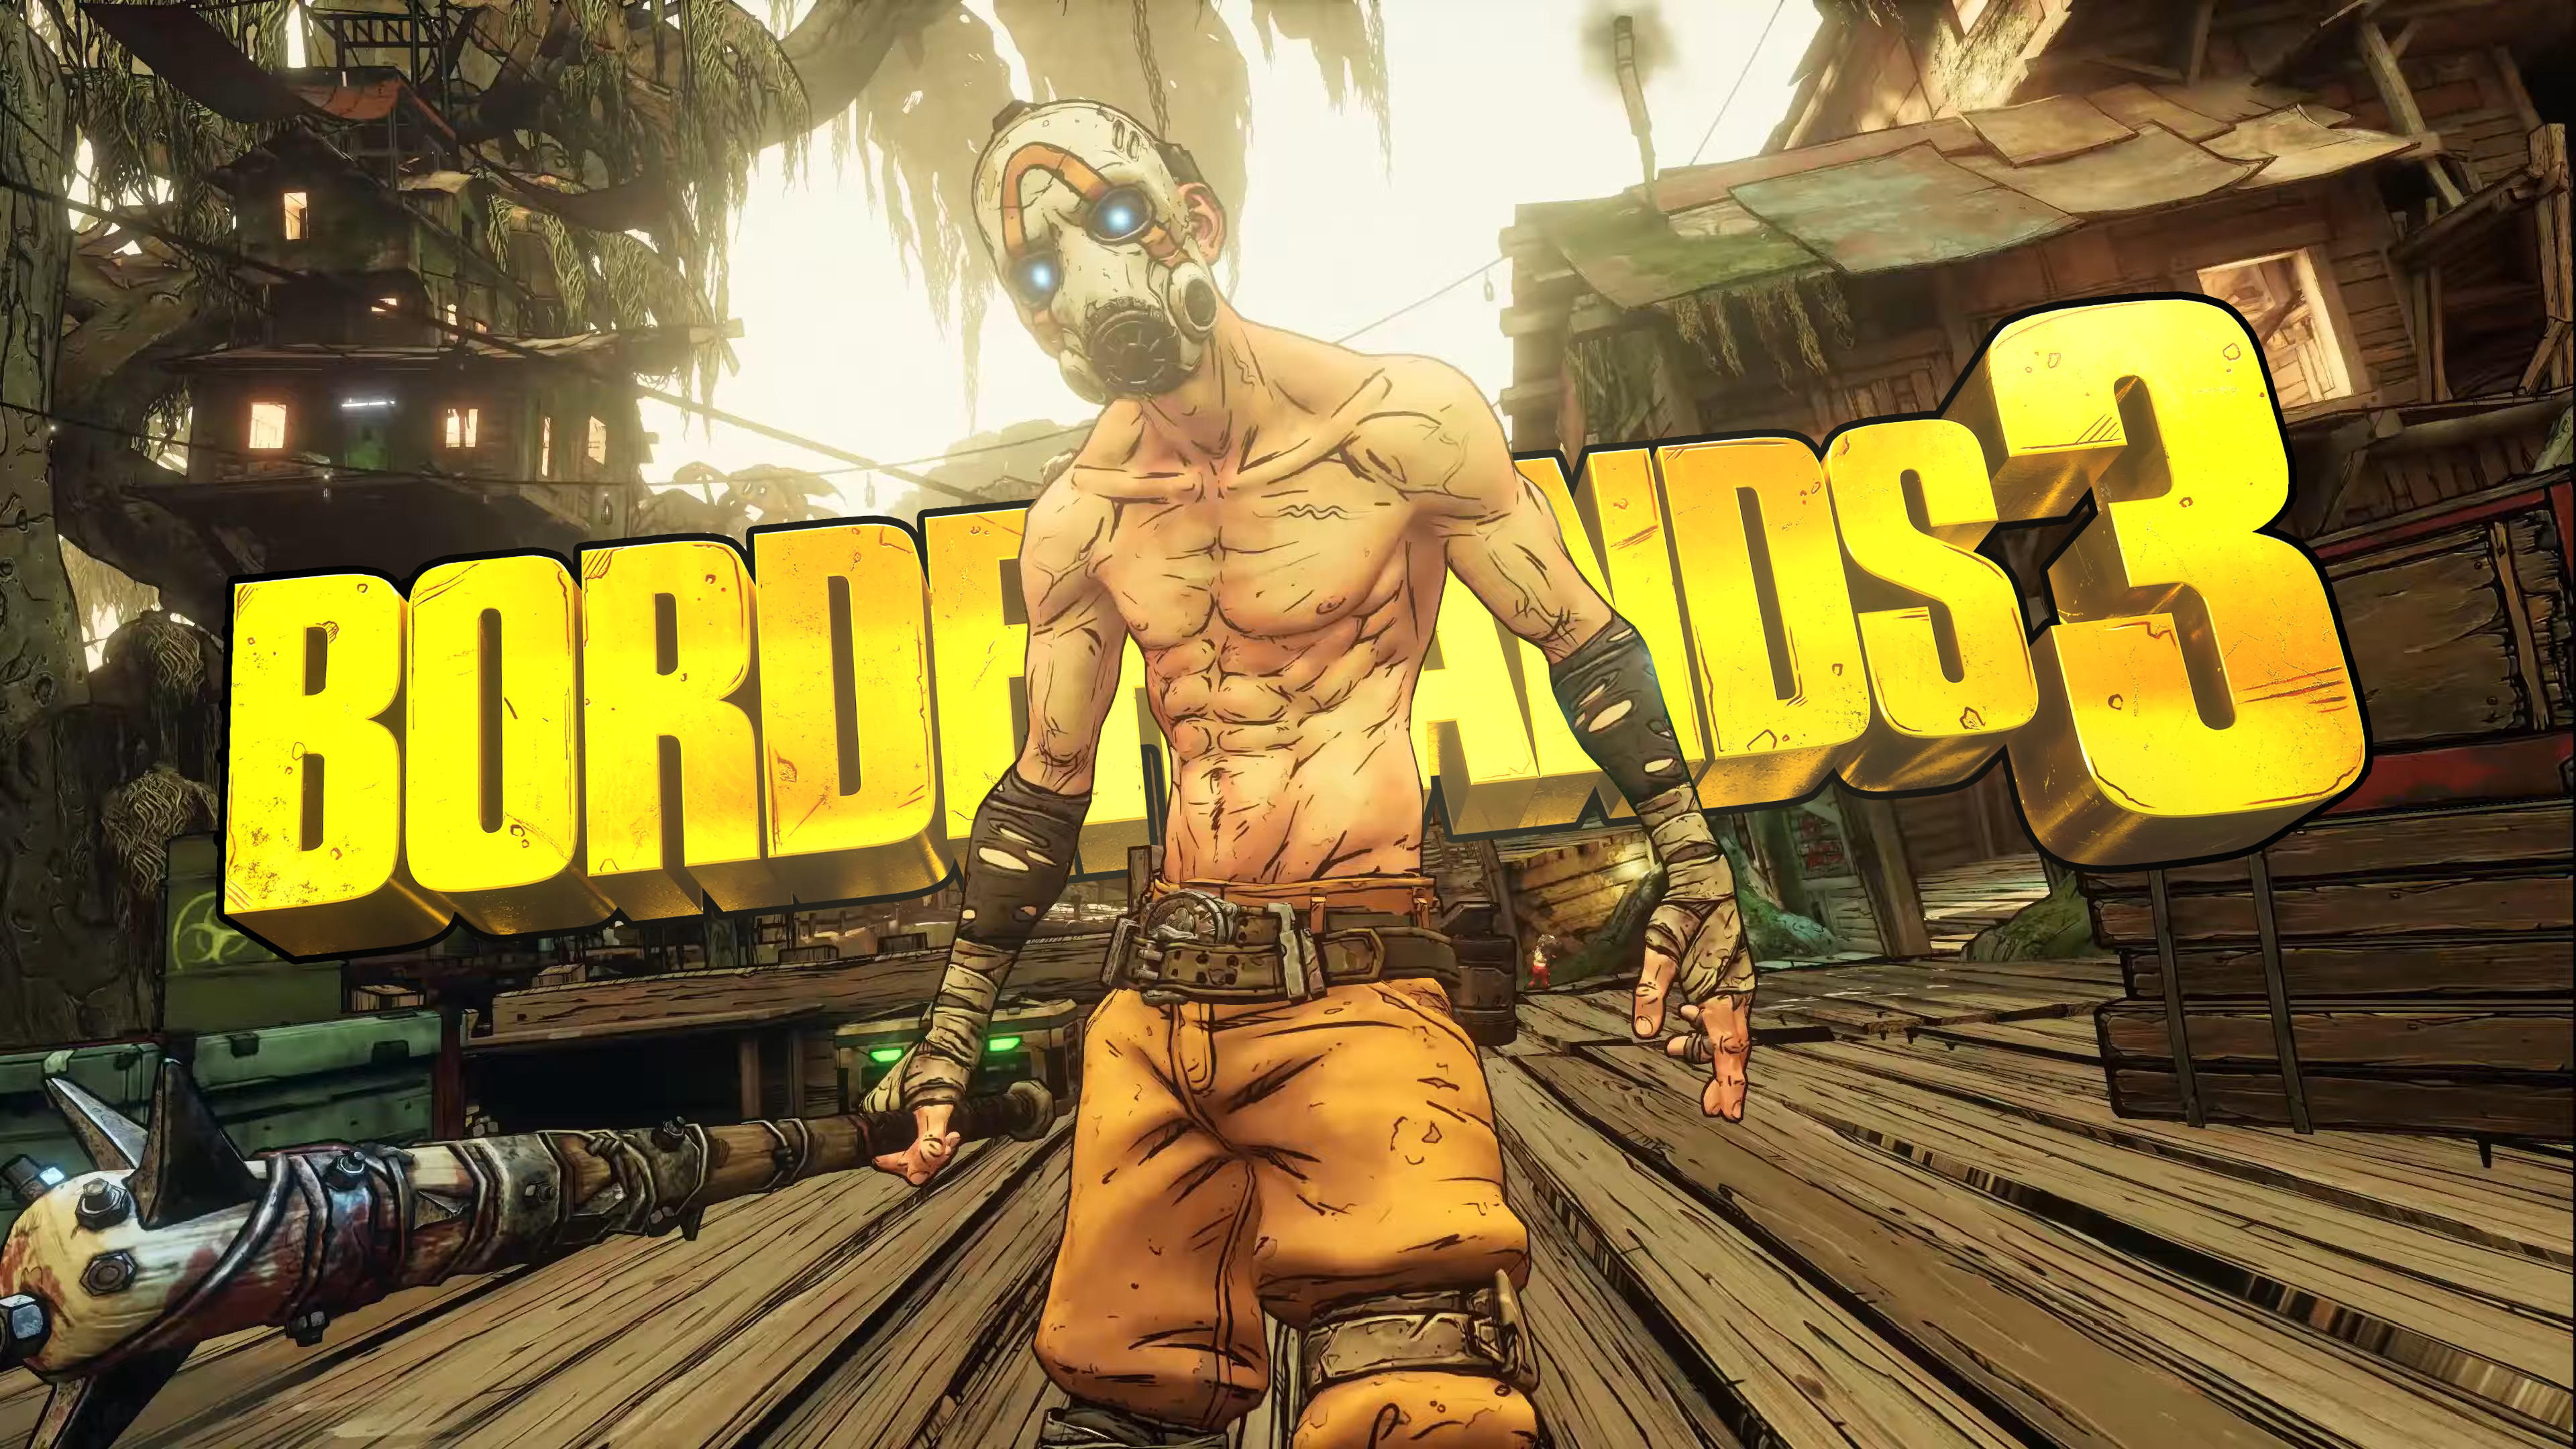 Borderlands 3 Wallpaper 4k Ultra Hd Id 3086